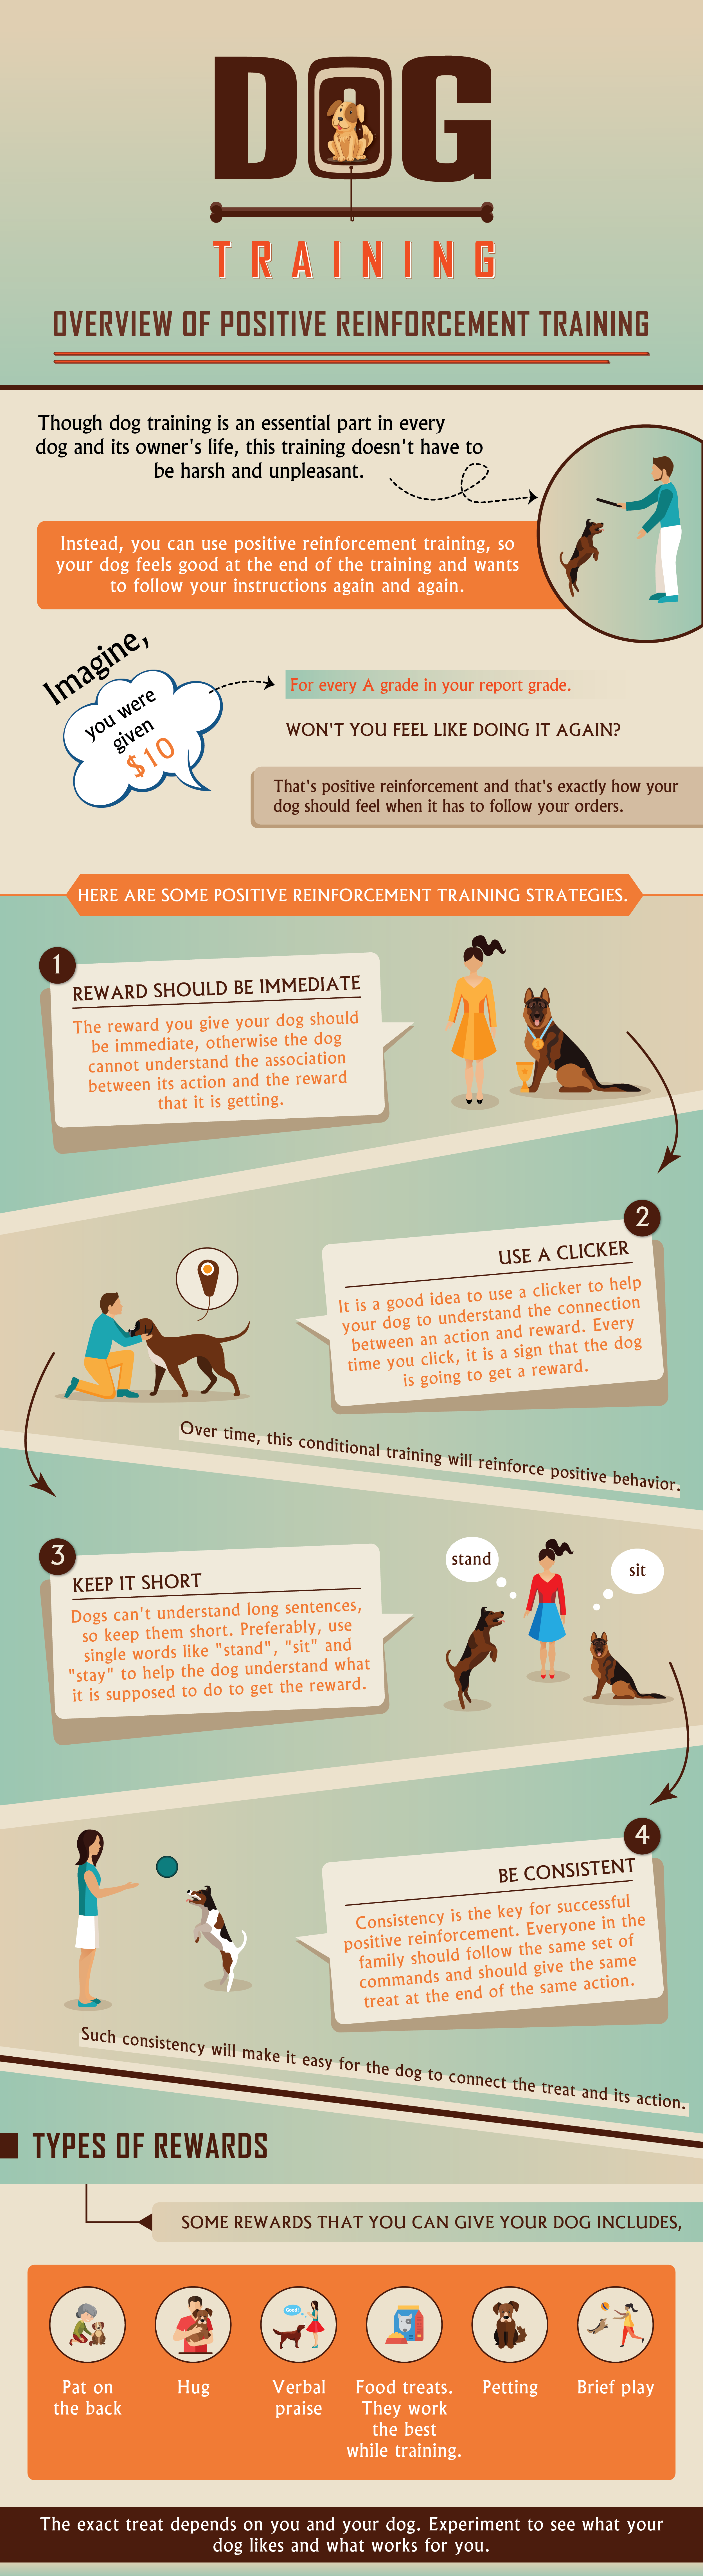 Dog Training - Overview of Positive Reinforcement Training